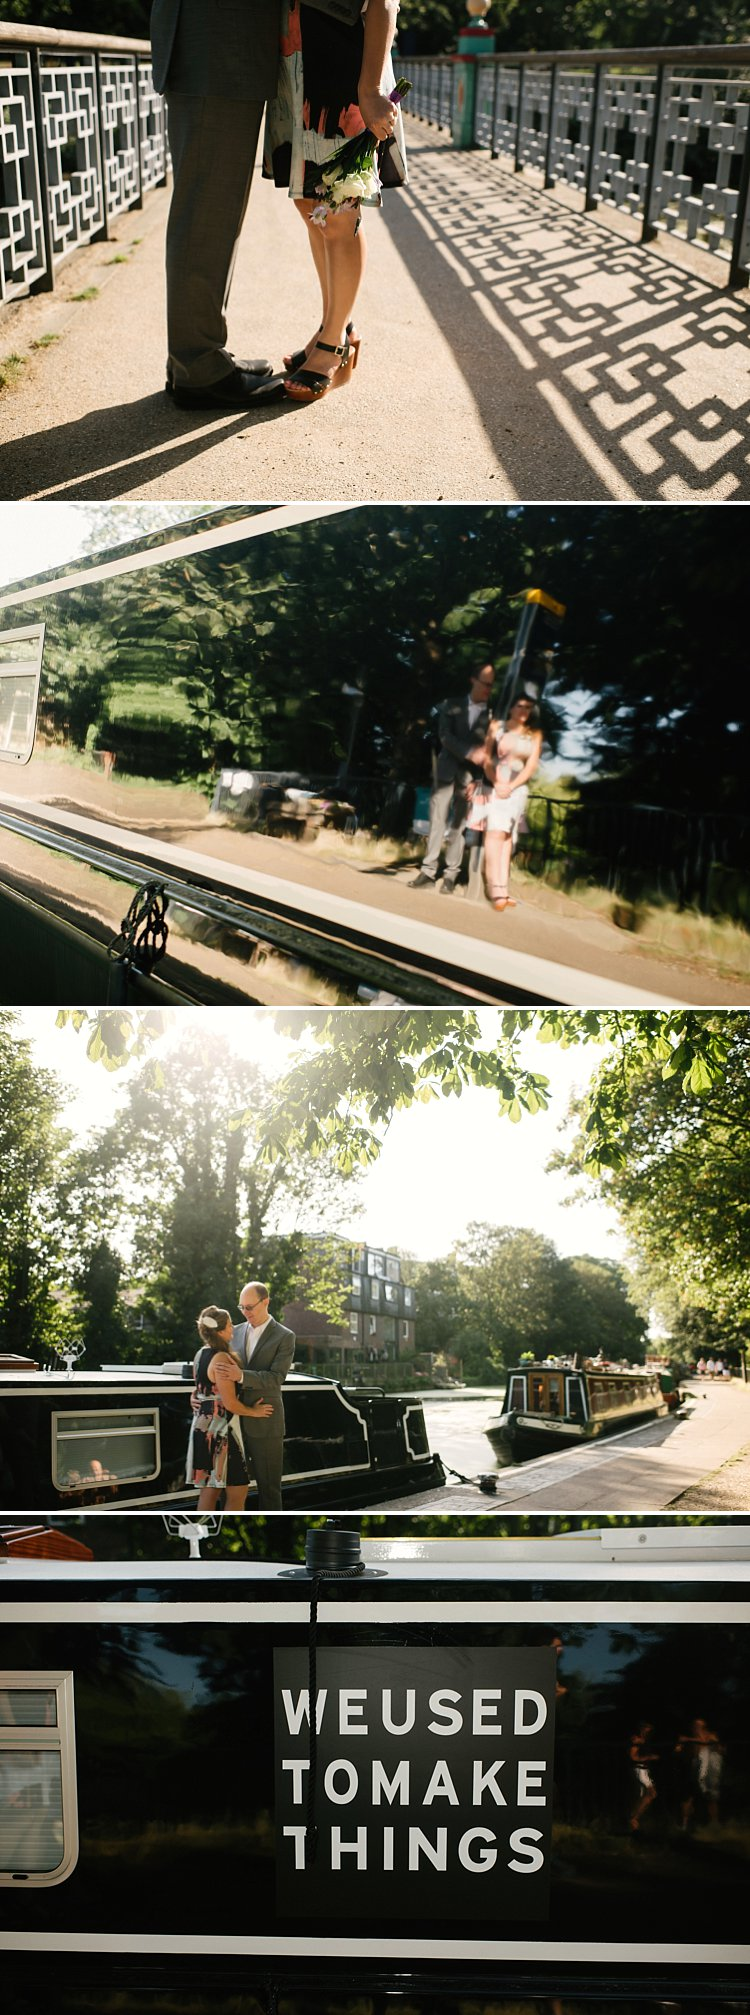 Victoria park wedding photographer london engagement photoshoot lily sawyer photo  5